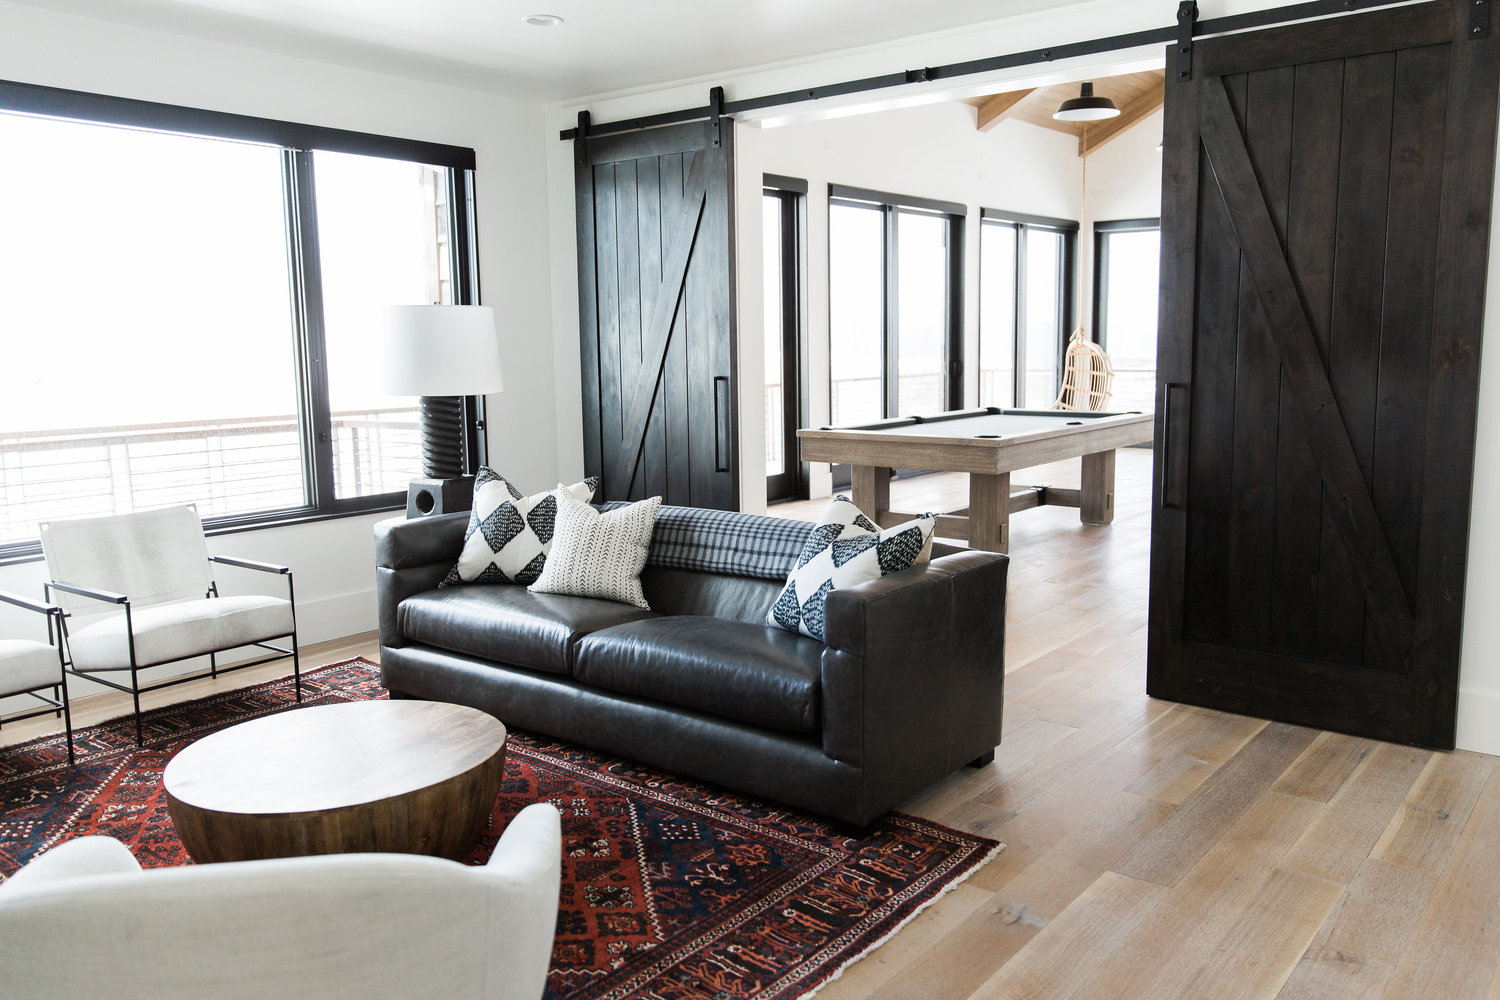 Large brown couch in front of double barn doors